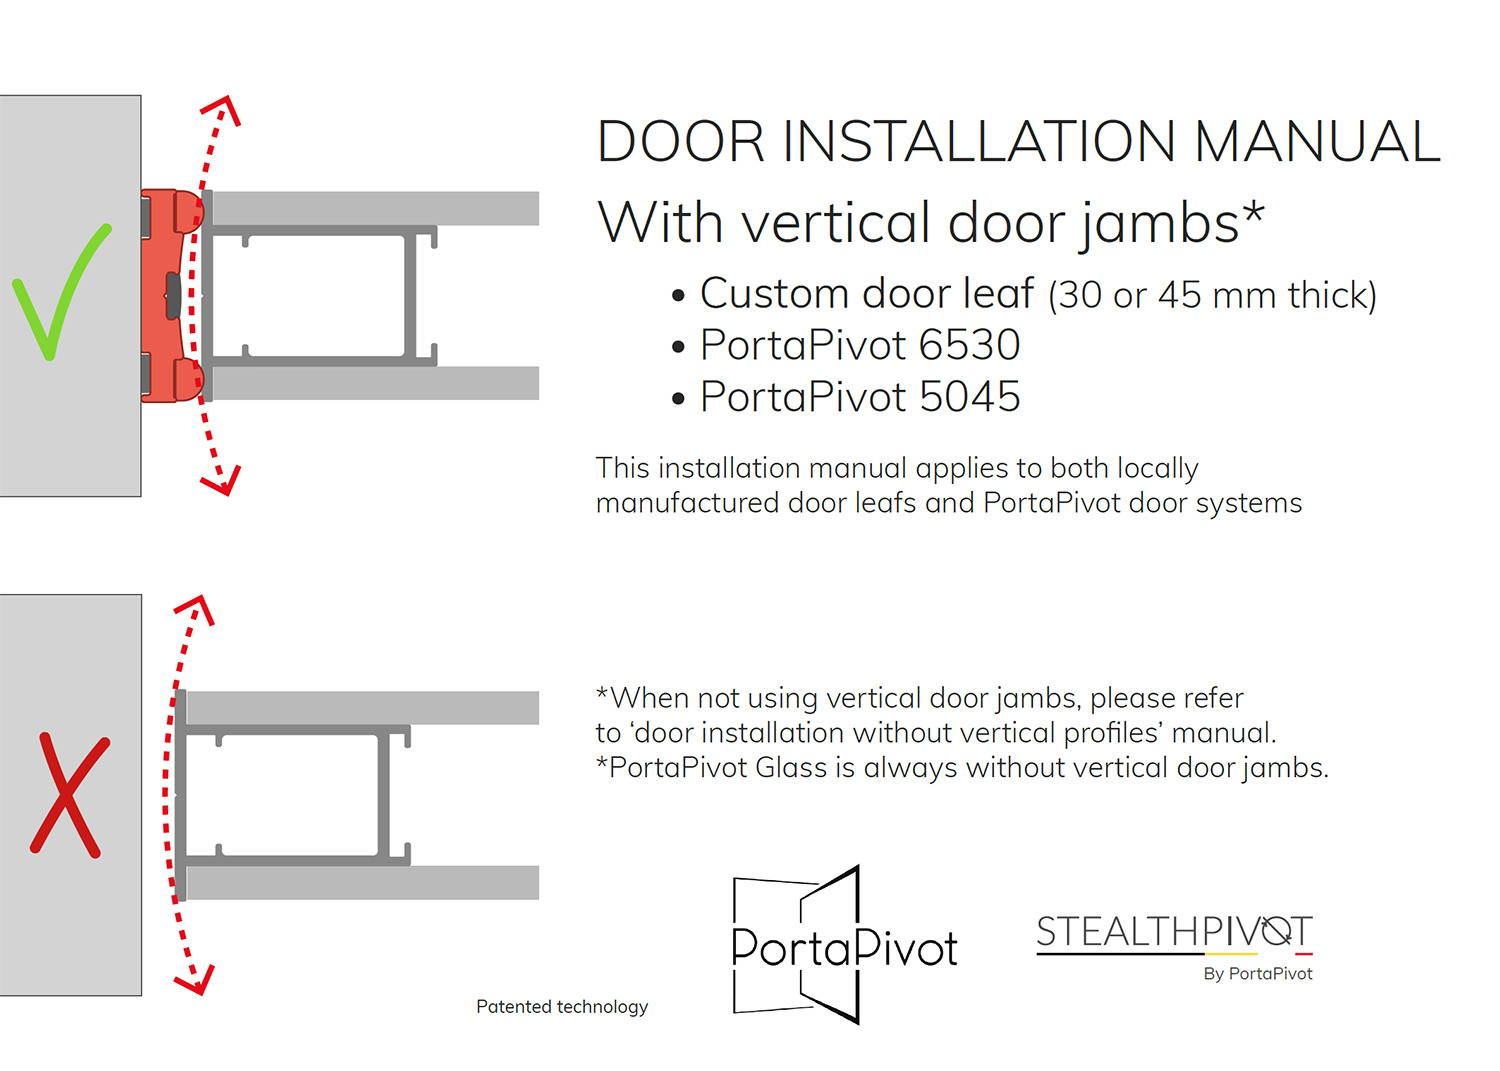 Portapivot 5045 installation manual with vertical door jambs